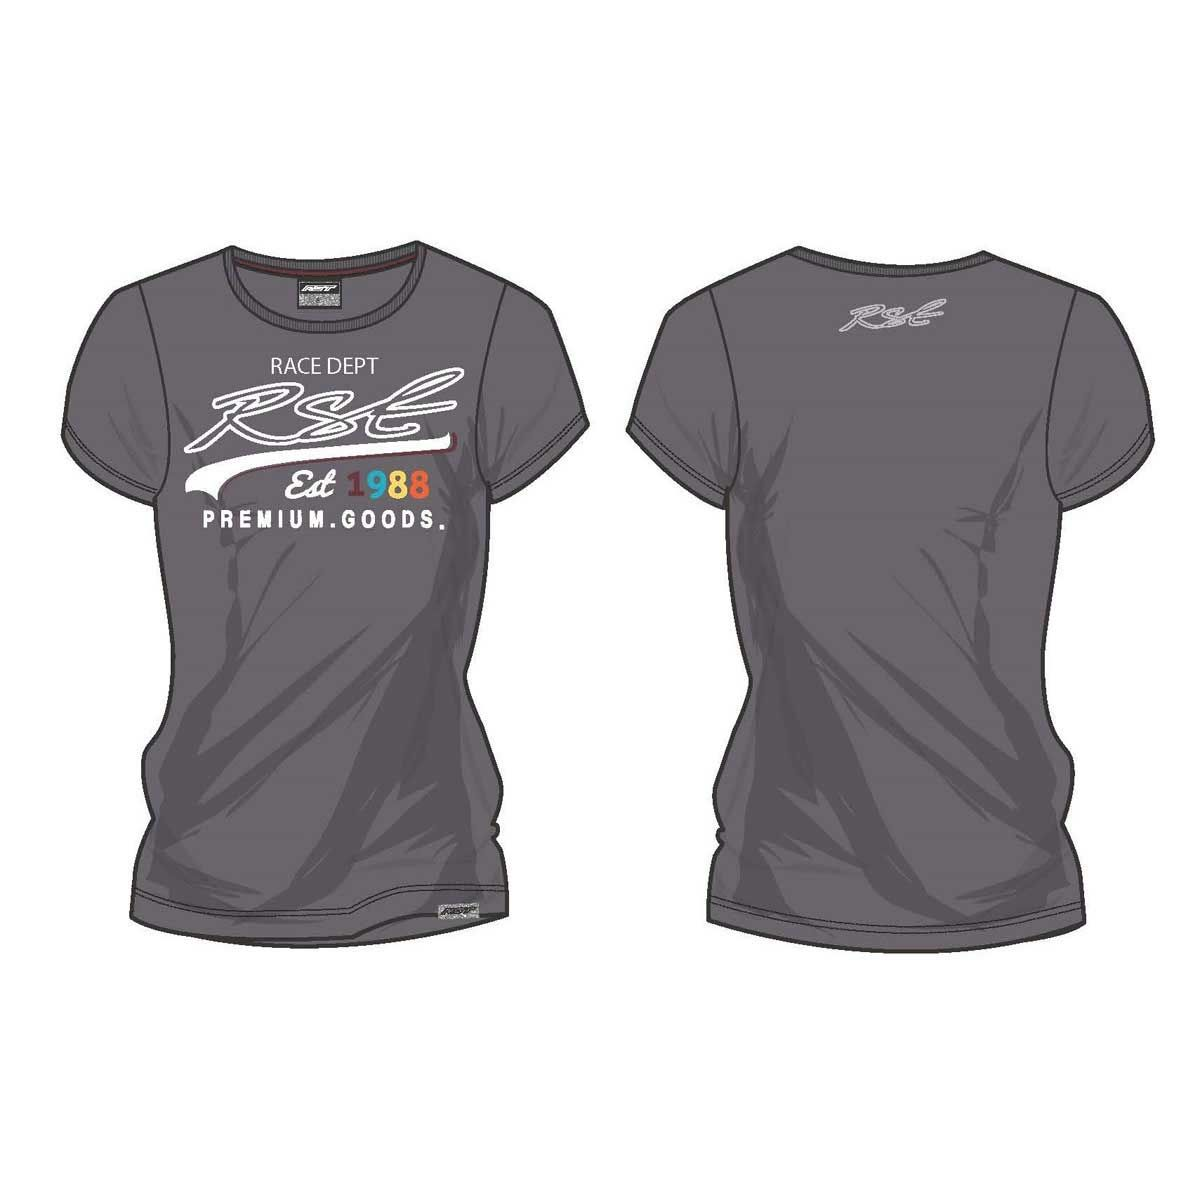 RST Casual Ladies Premium Goods Tee Slate